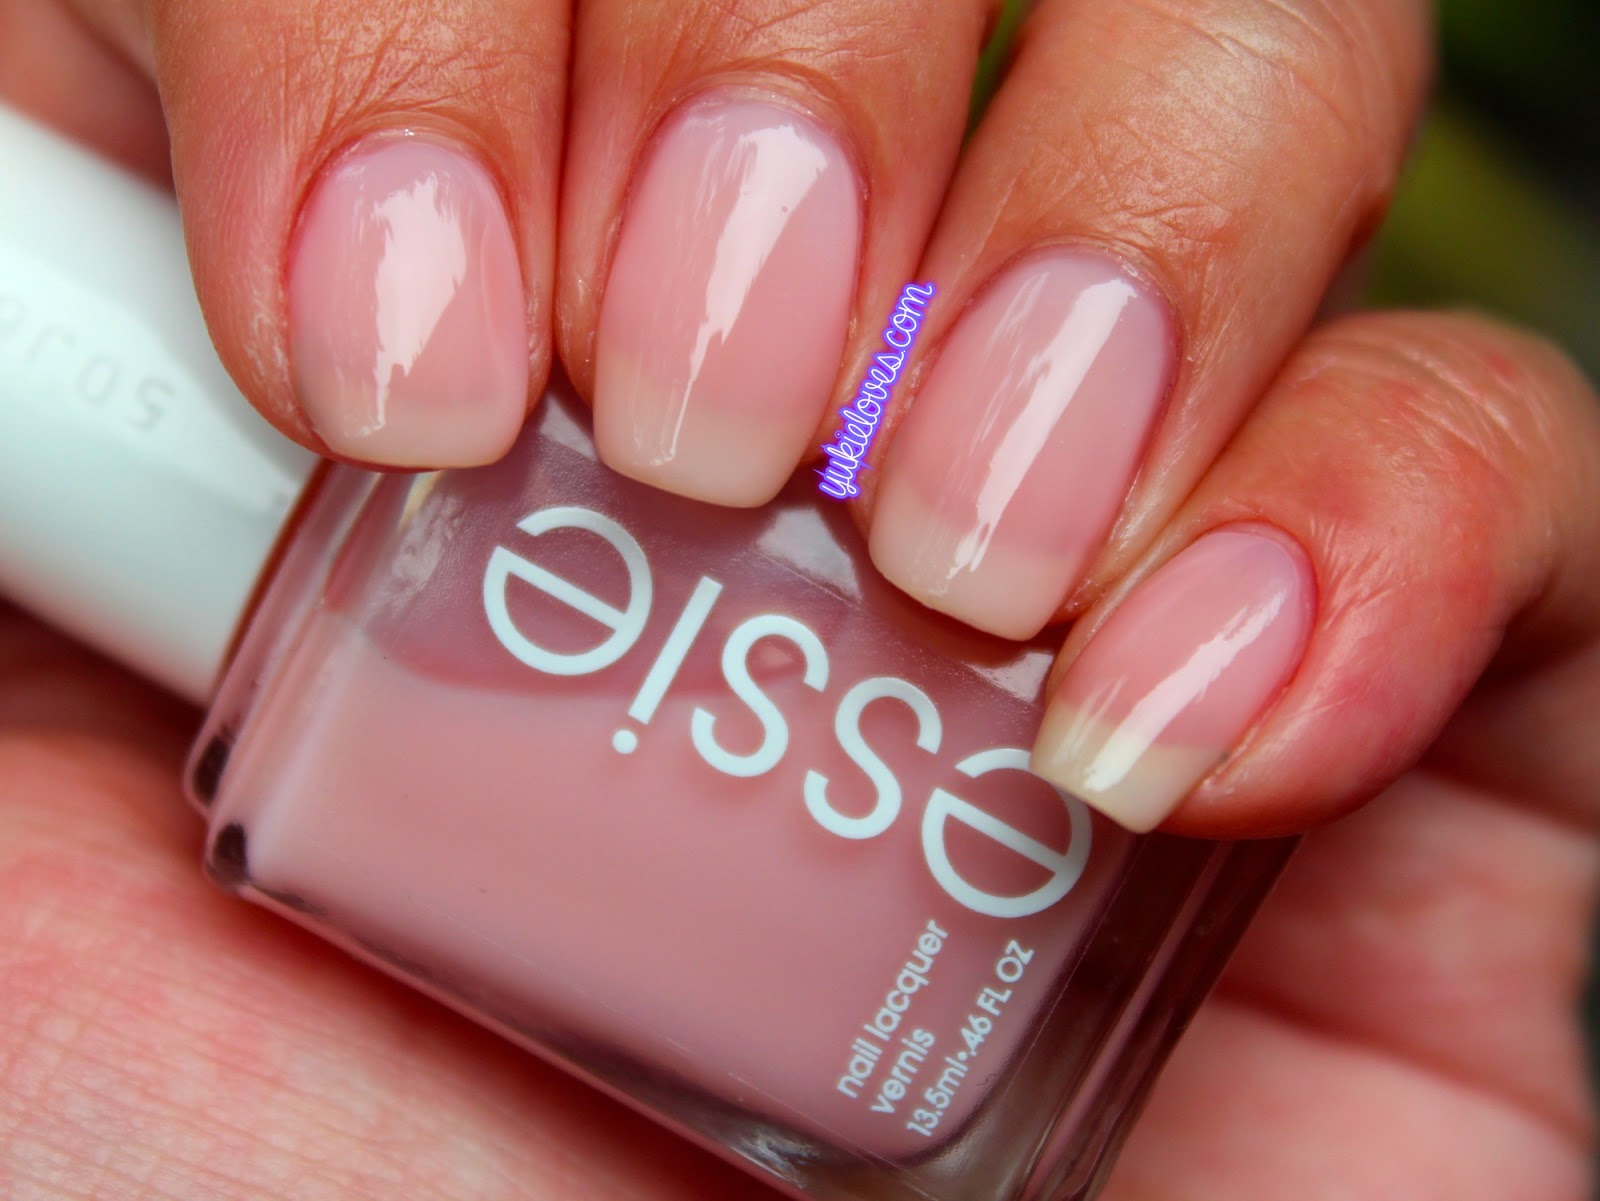 Essie Mademoiselle | Swatches & Review – yukieloves.com